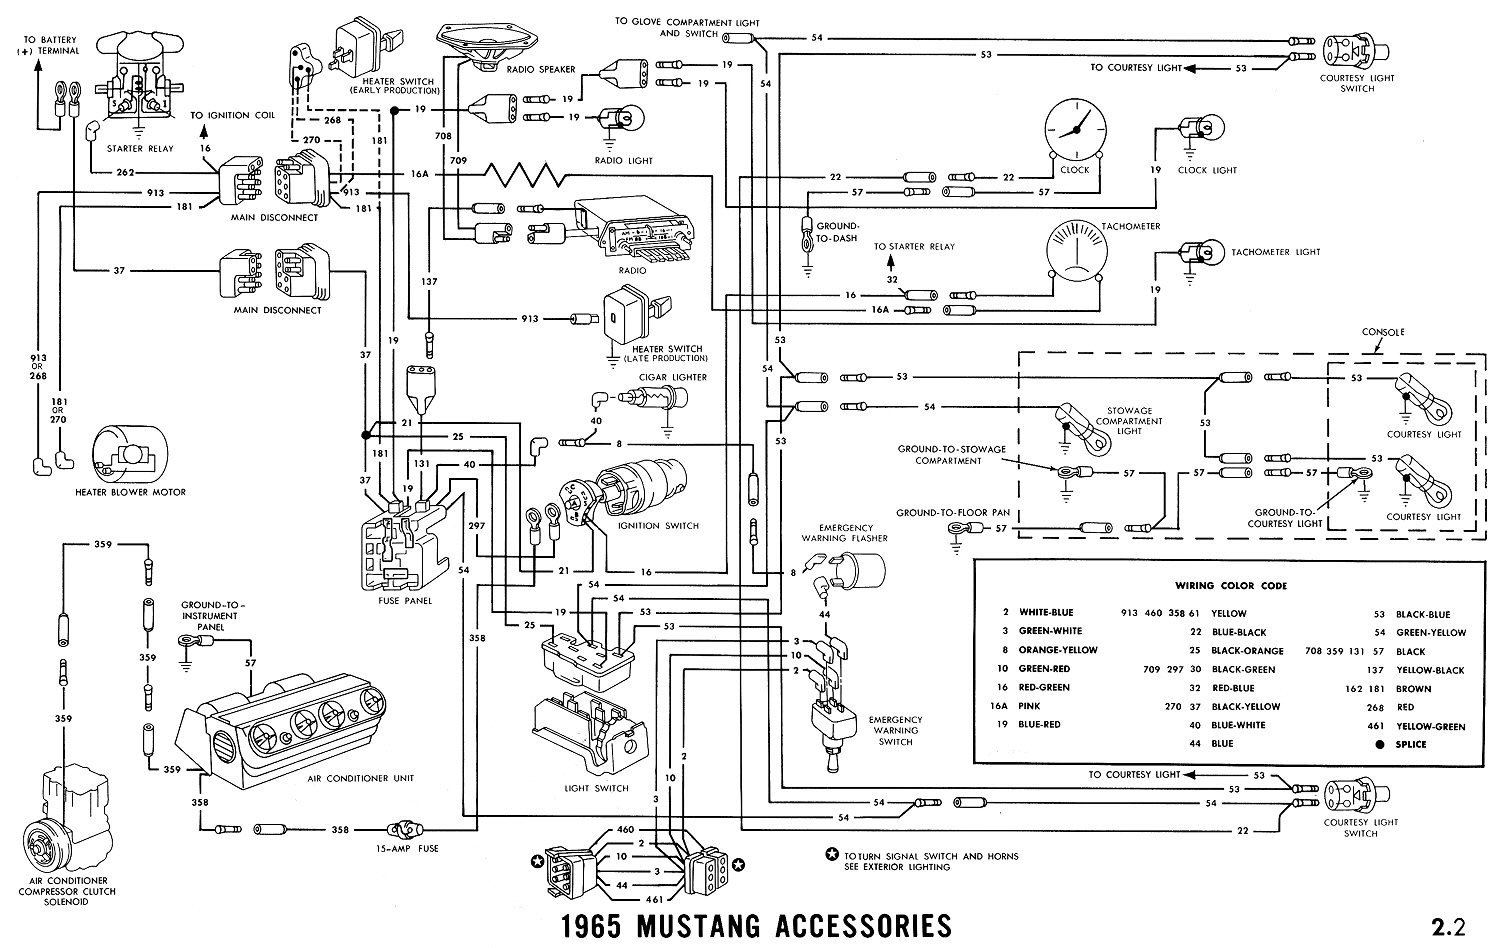 1965i 1965 mustang wiring diagrams average joe restoration 1965 ford falcon wiring diagram at aneh.co